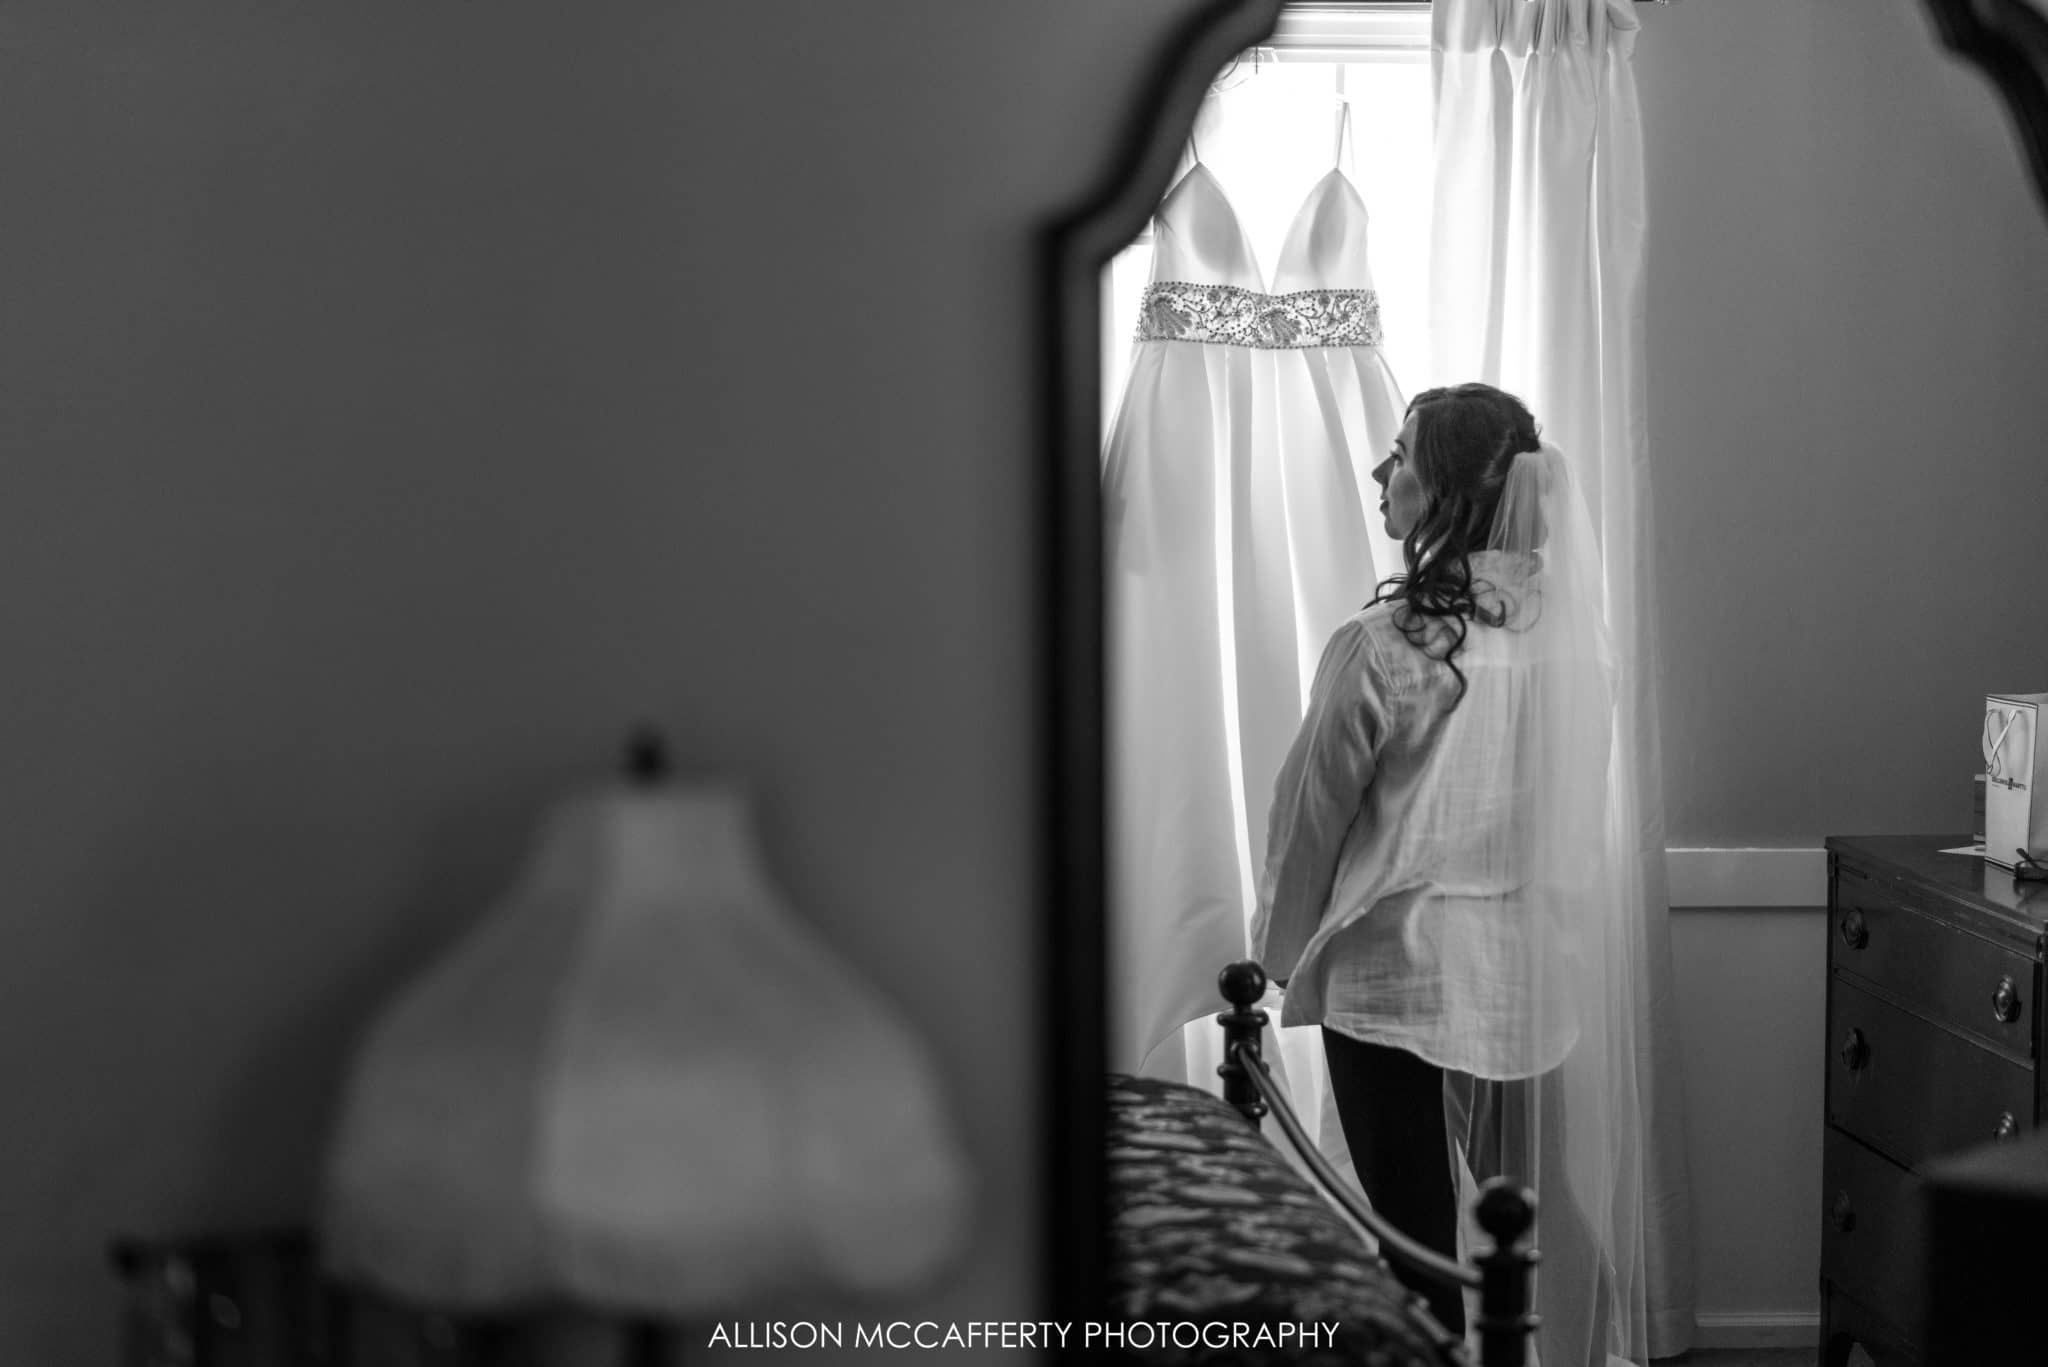 black and white photo of bride looking at her gown in a reflection